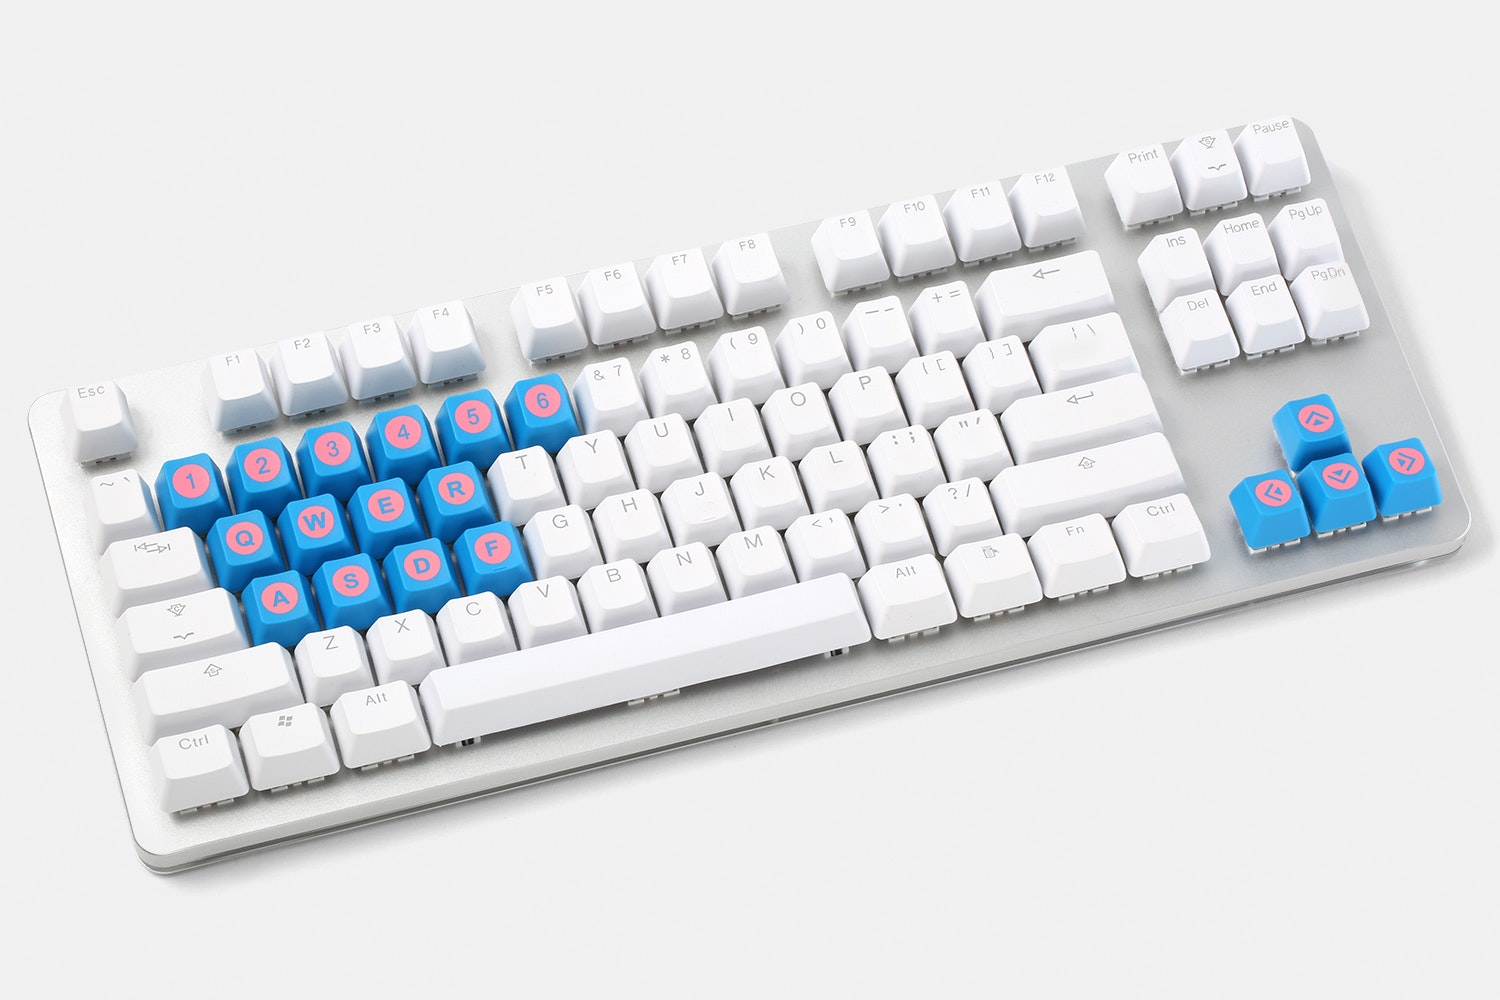 Tai-Hao ABS Doubleshot Gaming Keycaps (18 Count)